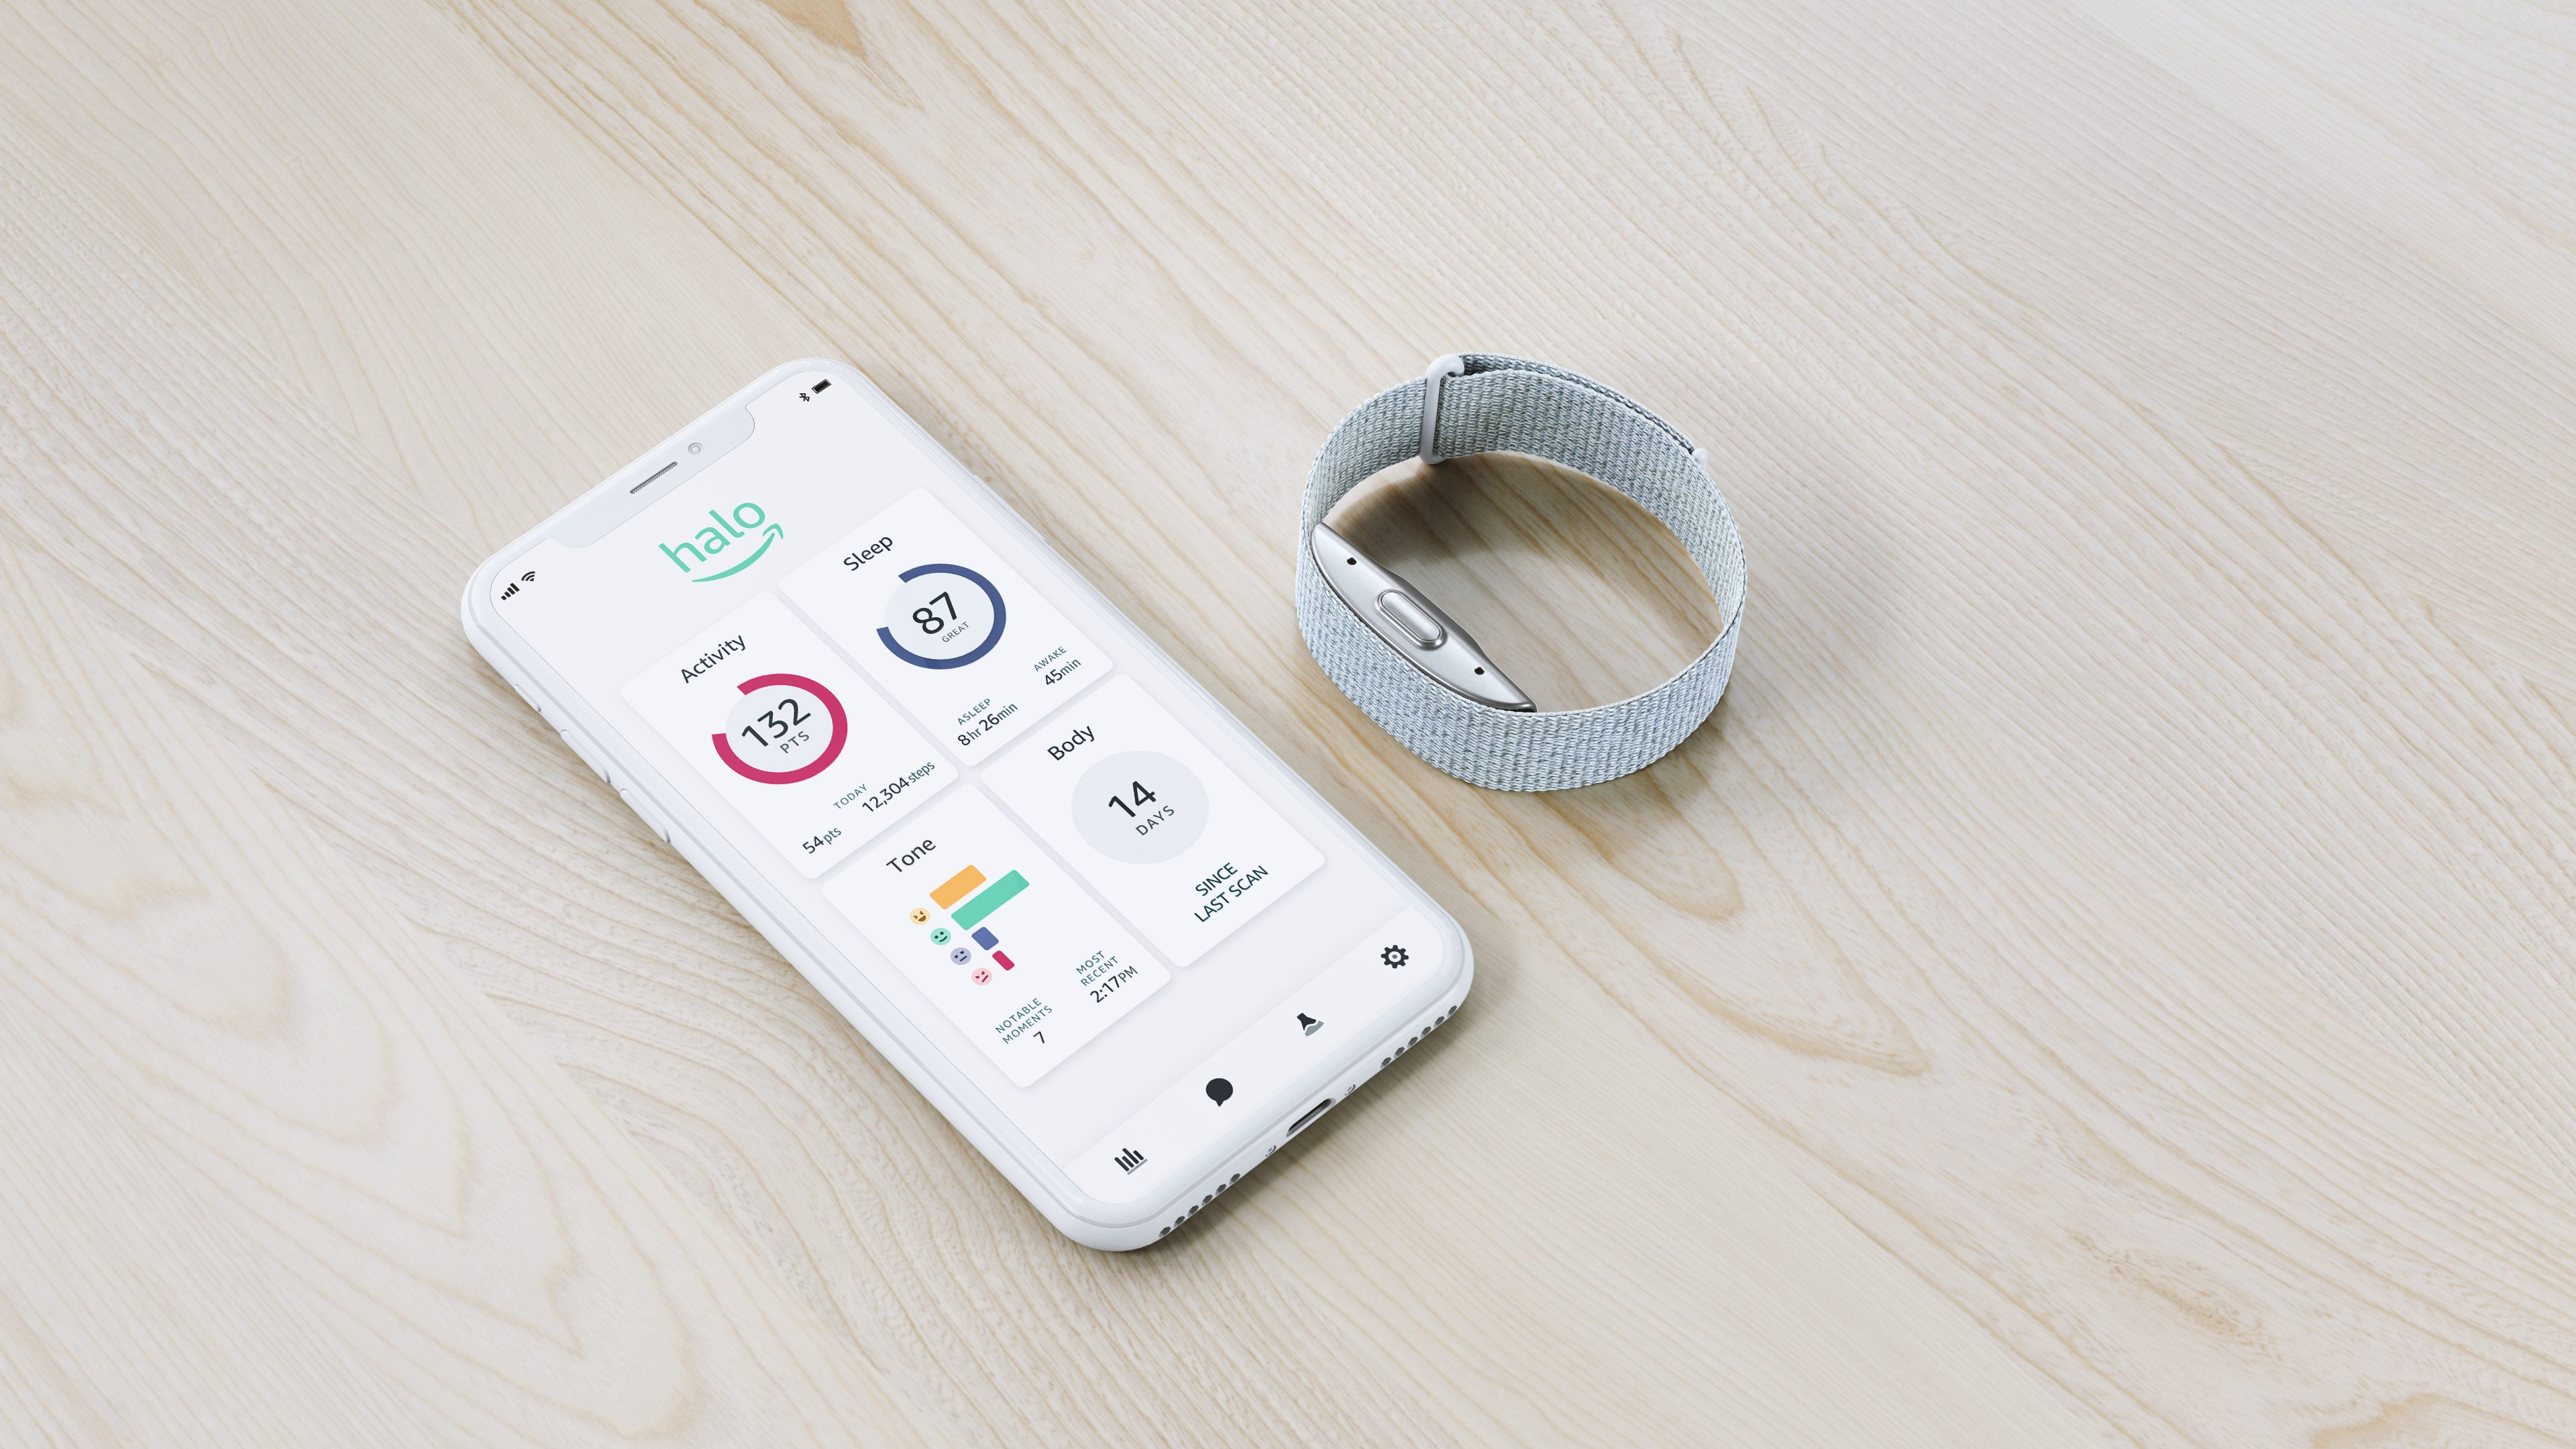 A silver Amazon Halo wristband sits next to a smartphone displaying the sleek Halo app